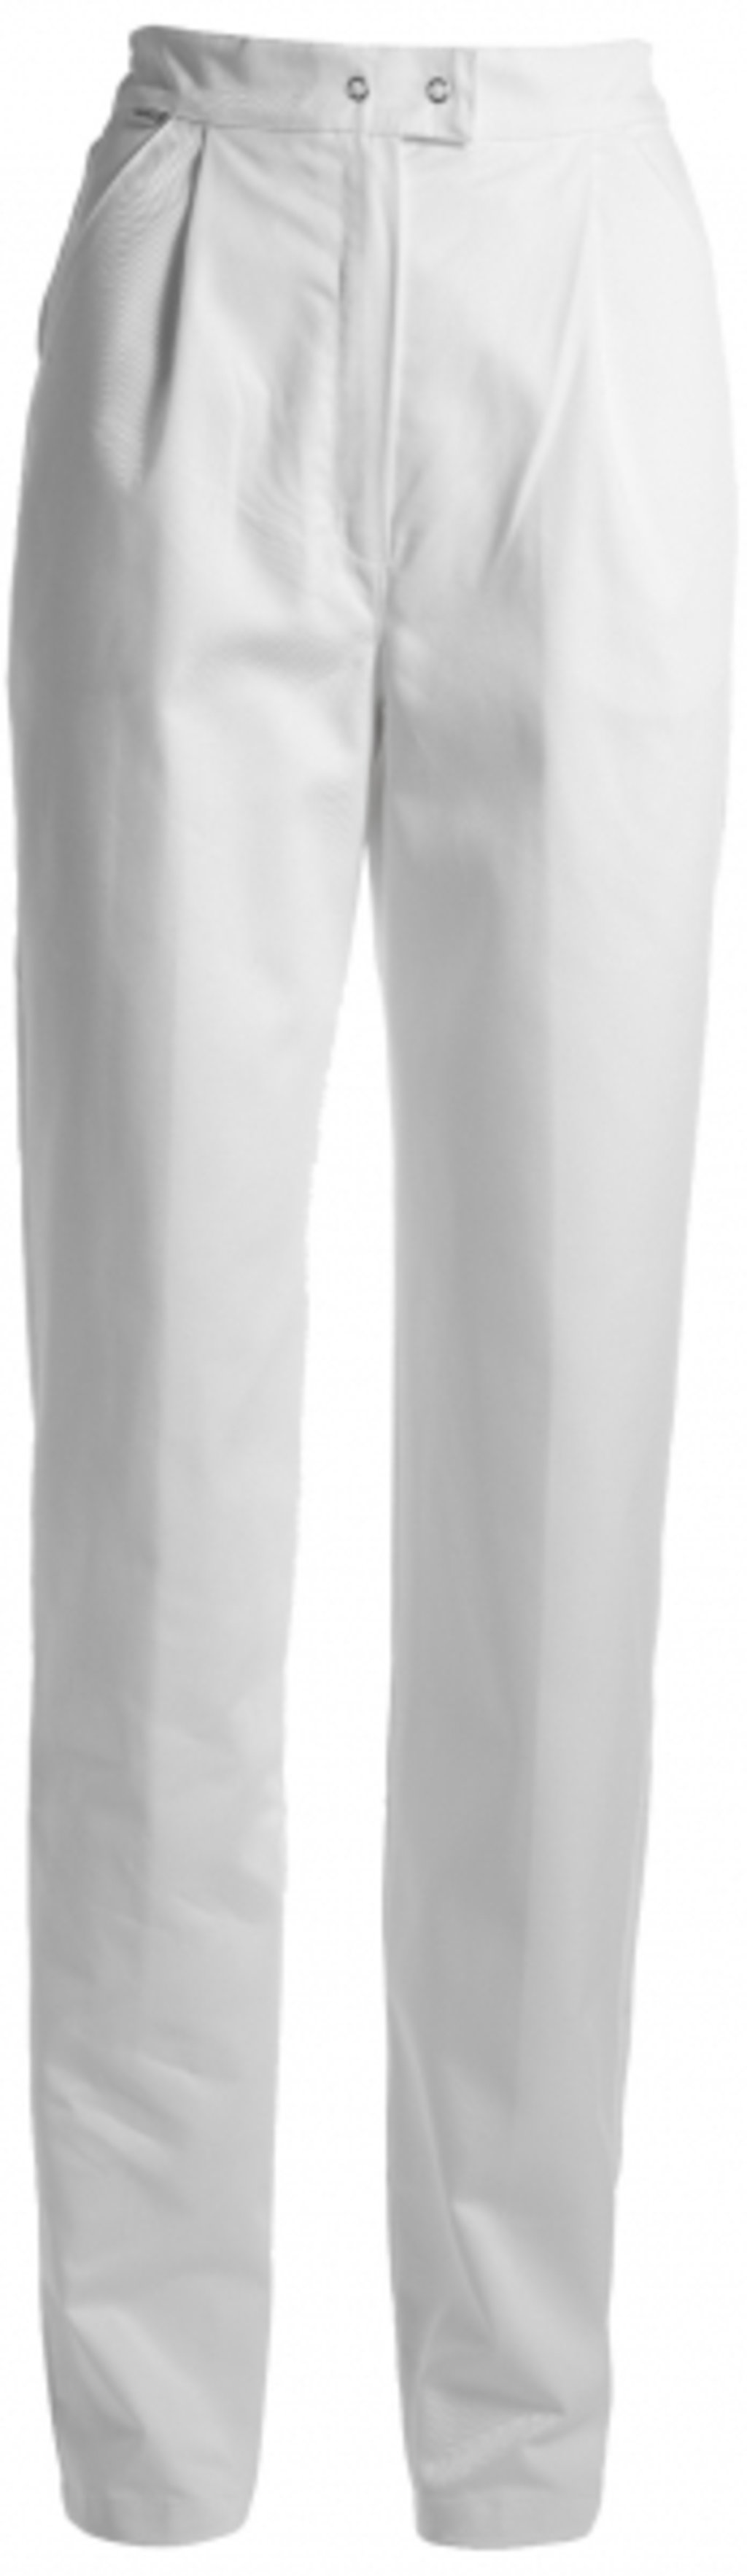 Kentaur women's trousers, 100% cotton, White